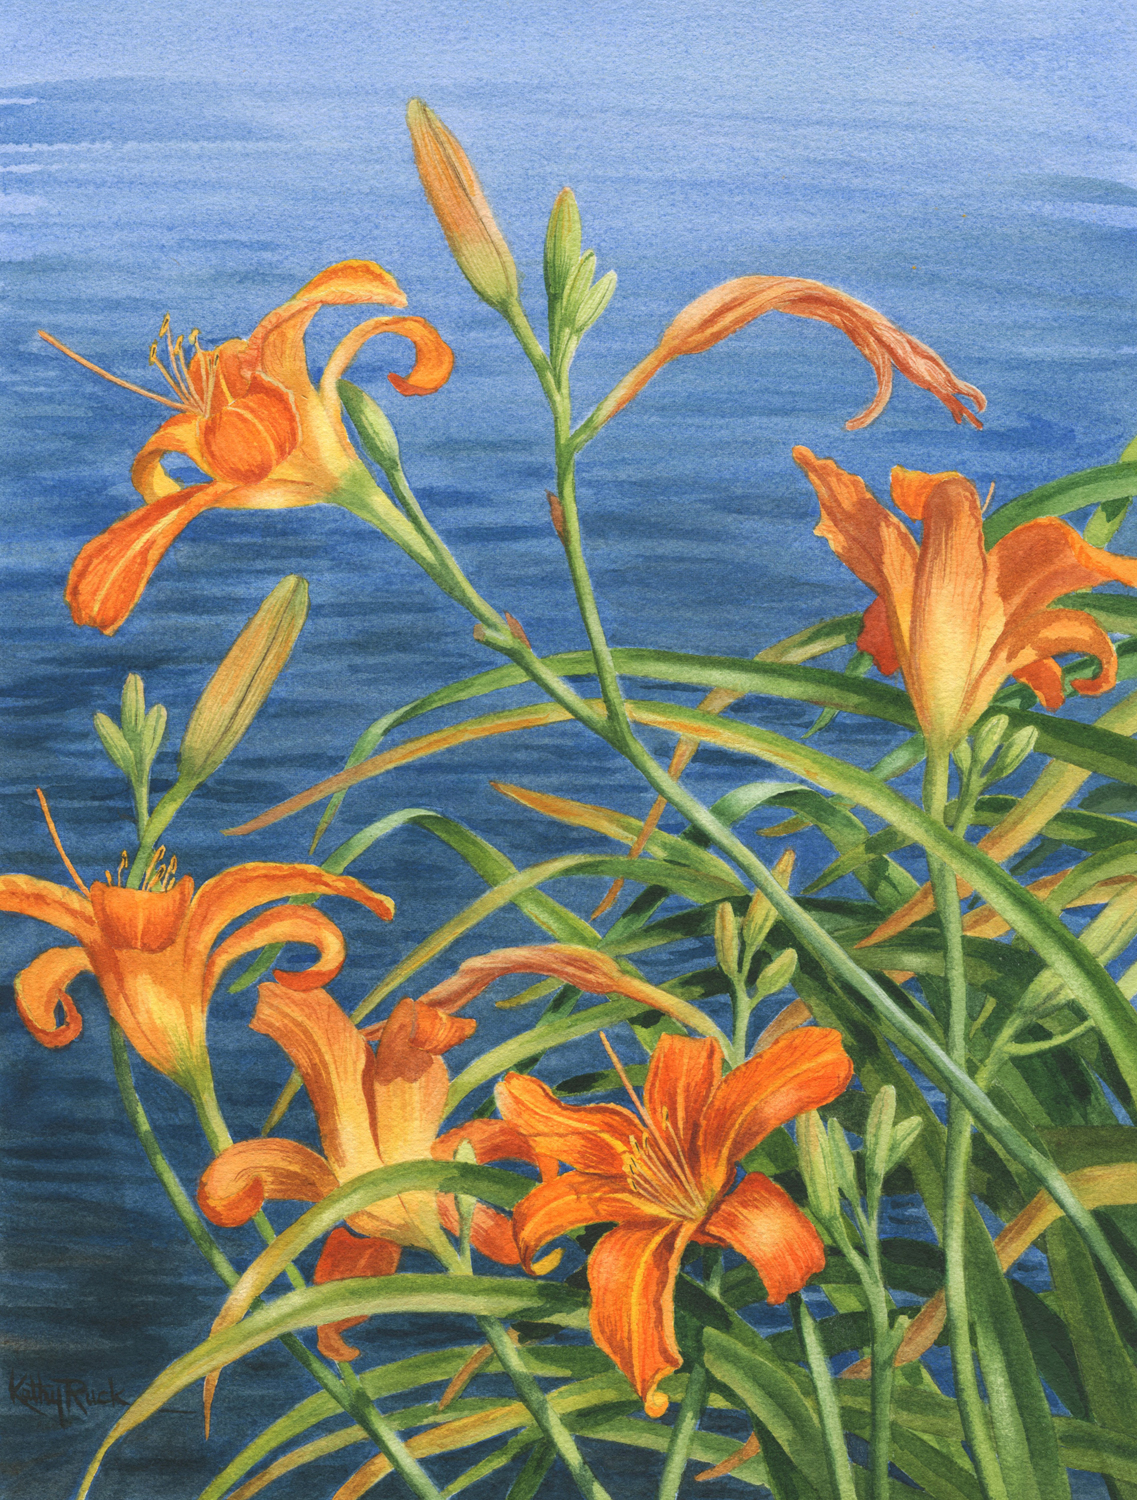 Lilies by the Lake - Kathy Ruck